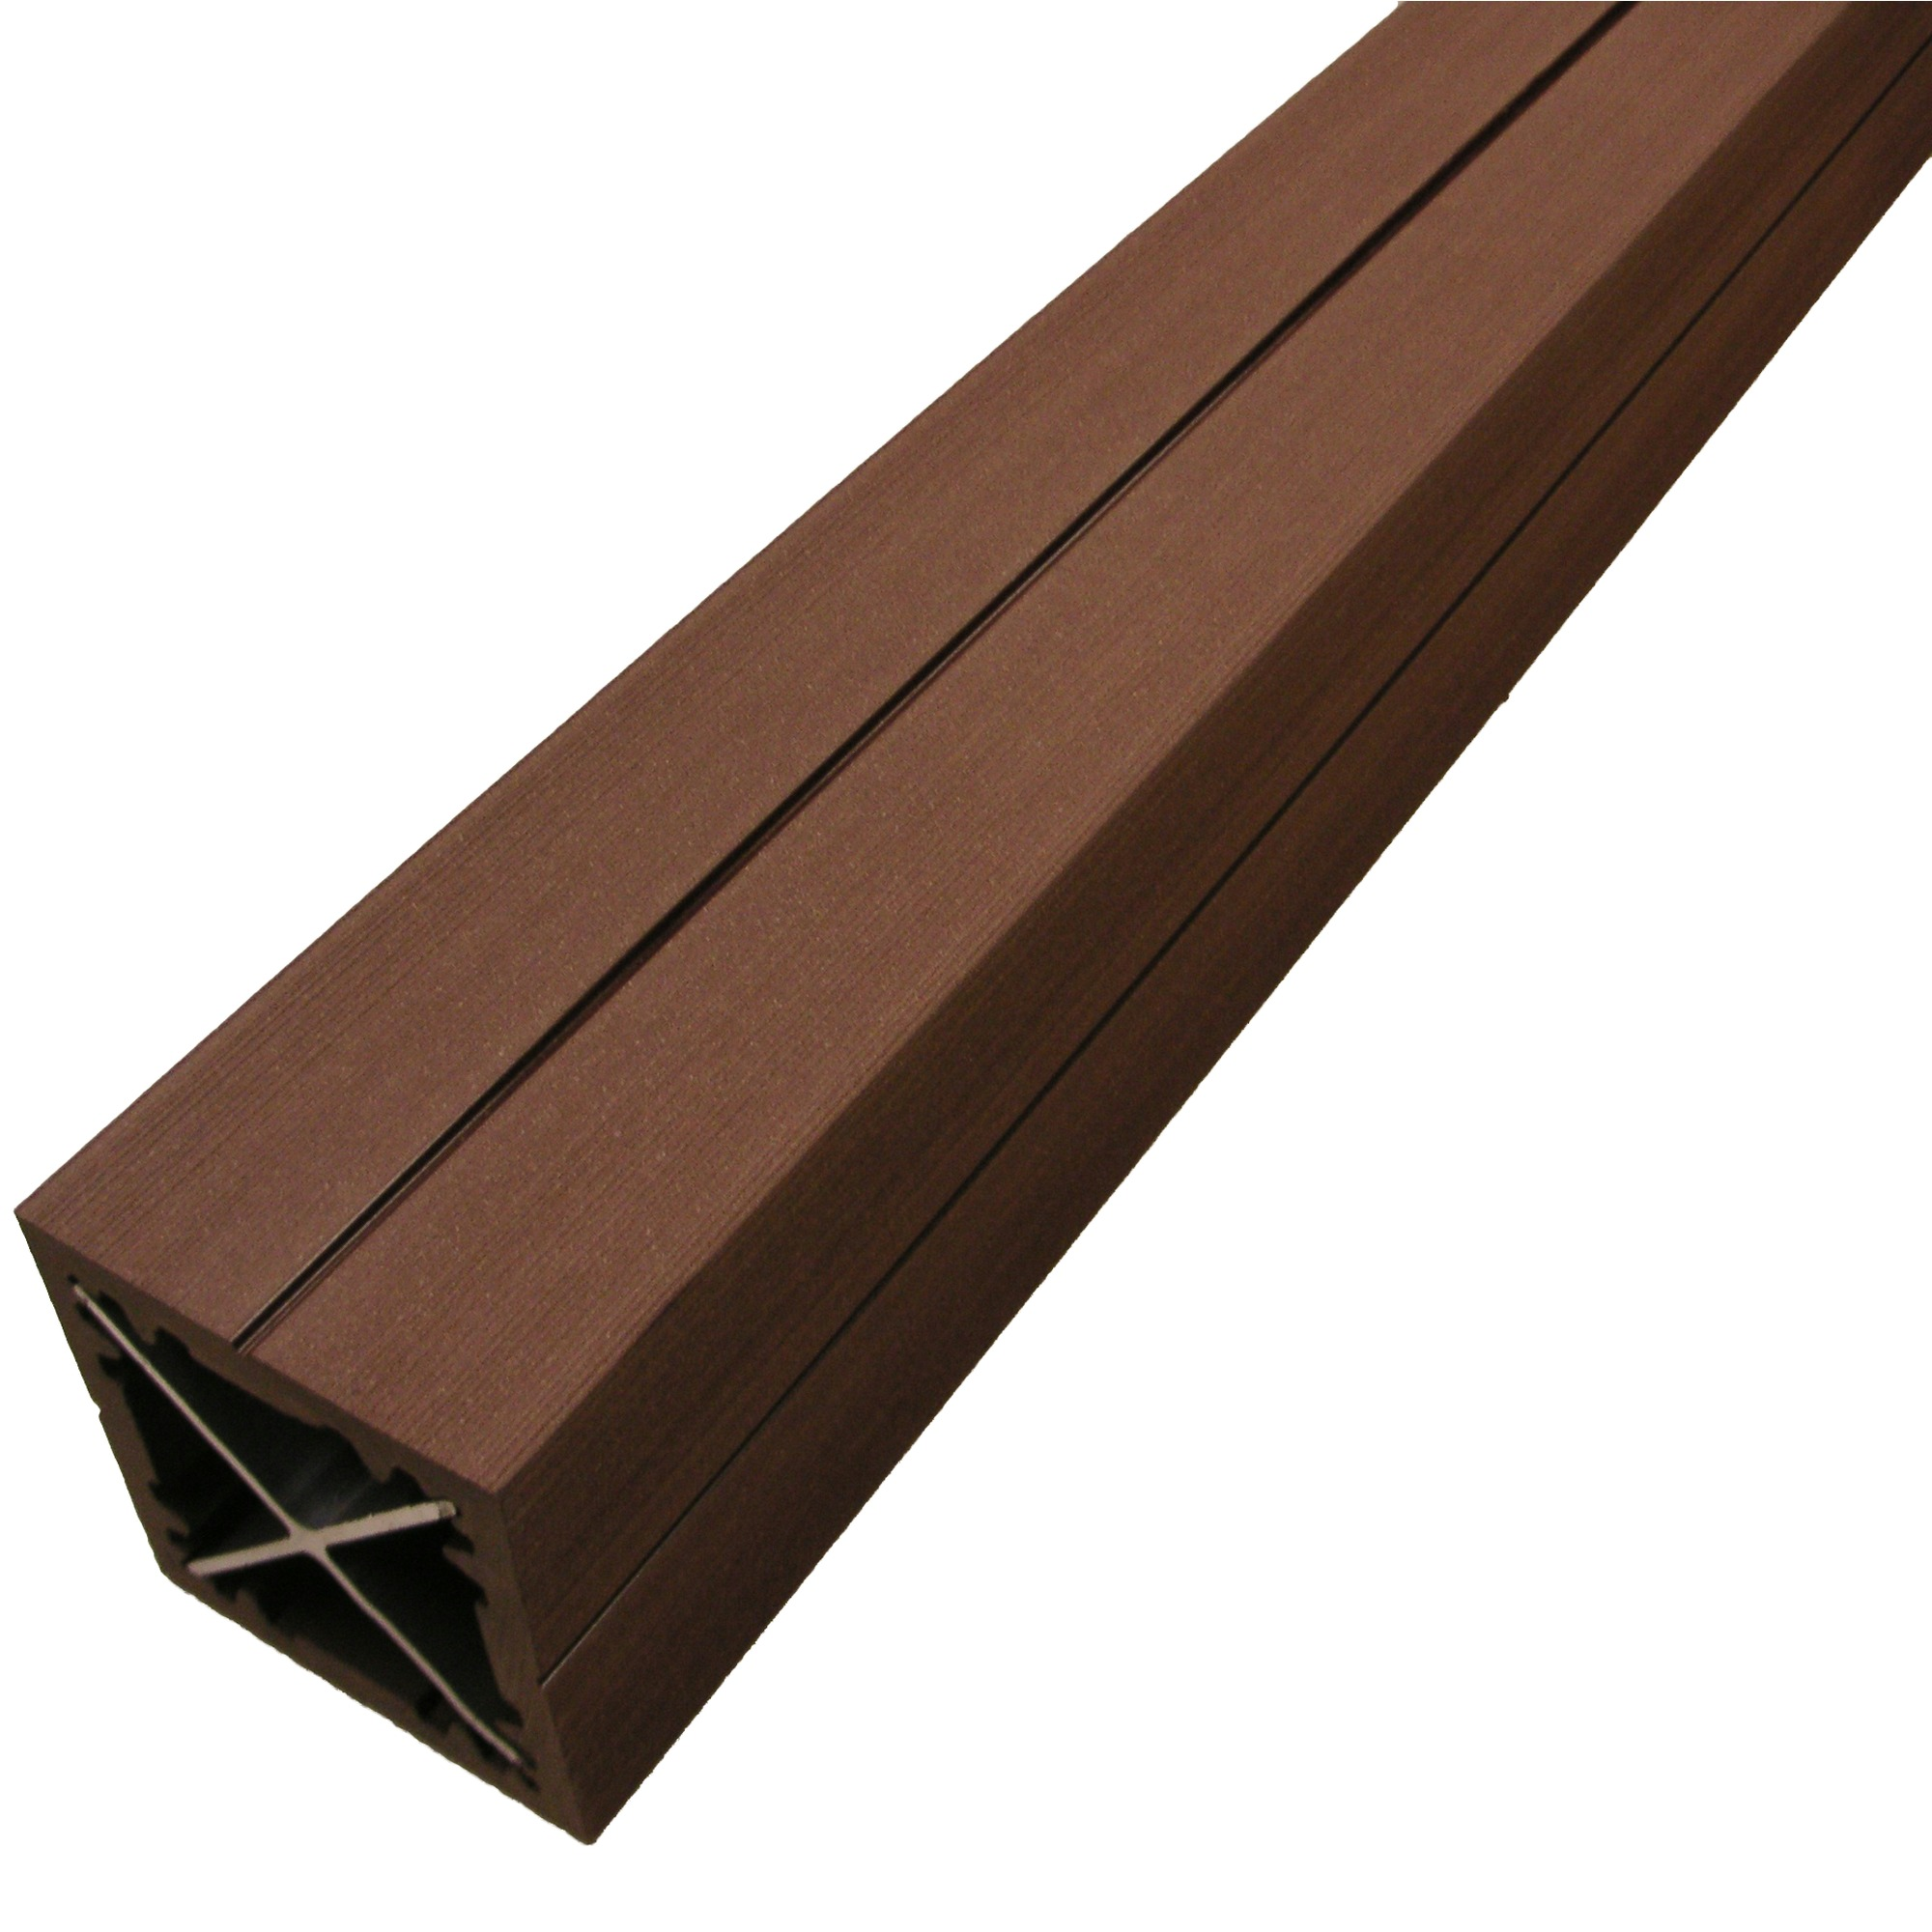 Poteau en bois composite duofuse 9x9x270 cm tropical brown - Poteau cloture bois ...